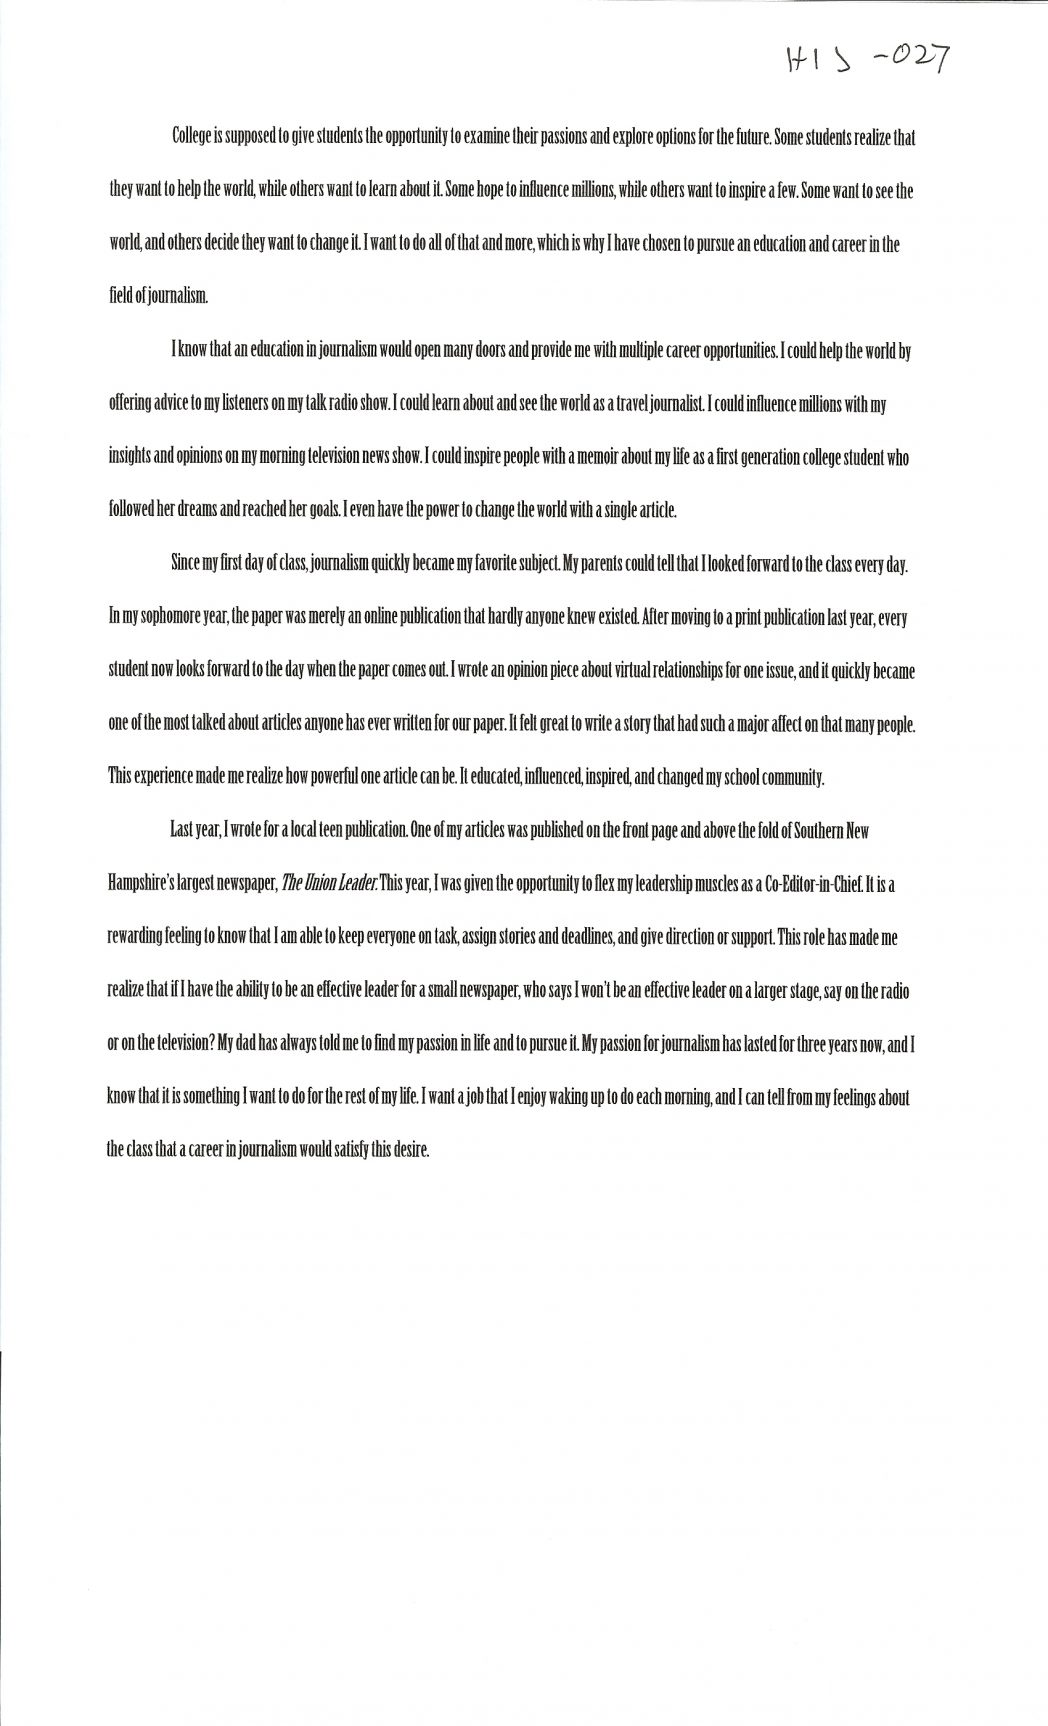 005 Free Argumentative Essay Example The Value Of College Education For Scholarship Tuition Alexa Serrecchia Stunning Topics Examples Middle School On Obesity Full